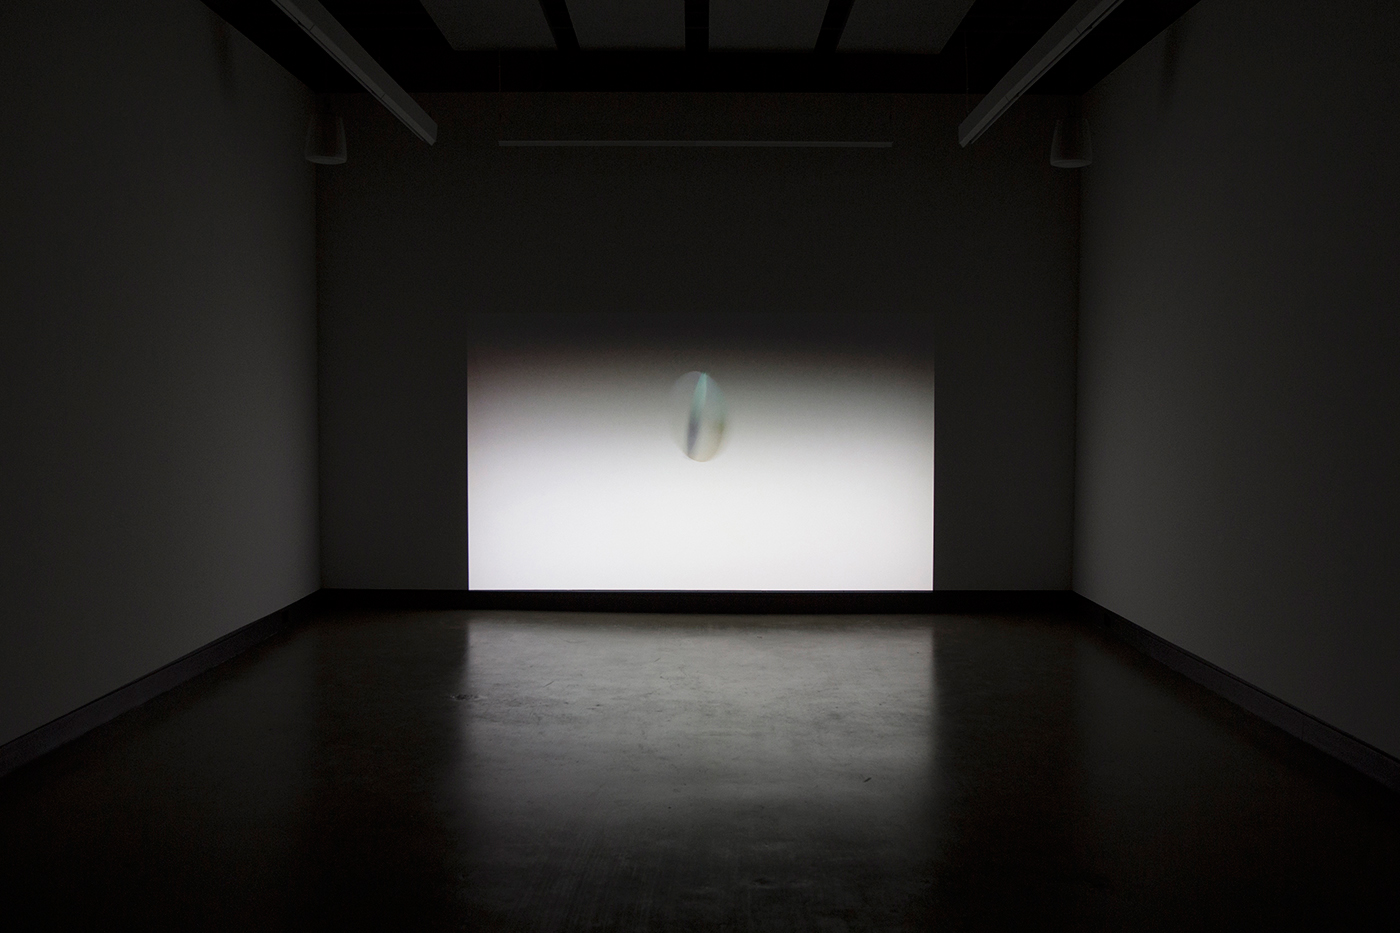 © Scott Massey,  Untitled (An object kindly enclyning)  (2012). Vue de l'exposition. Photo : Sara A. Tremblay.